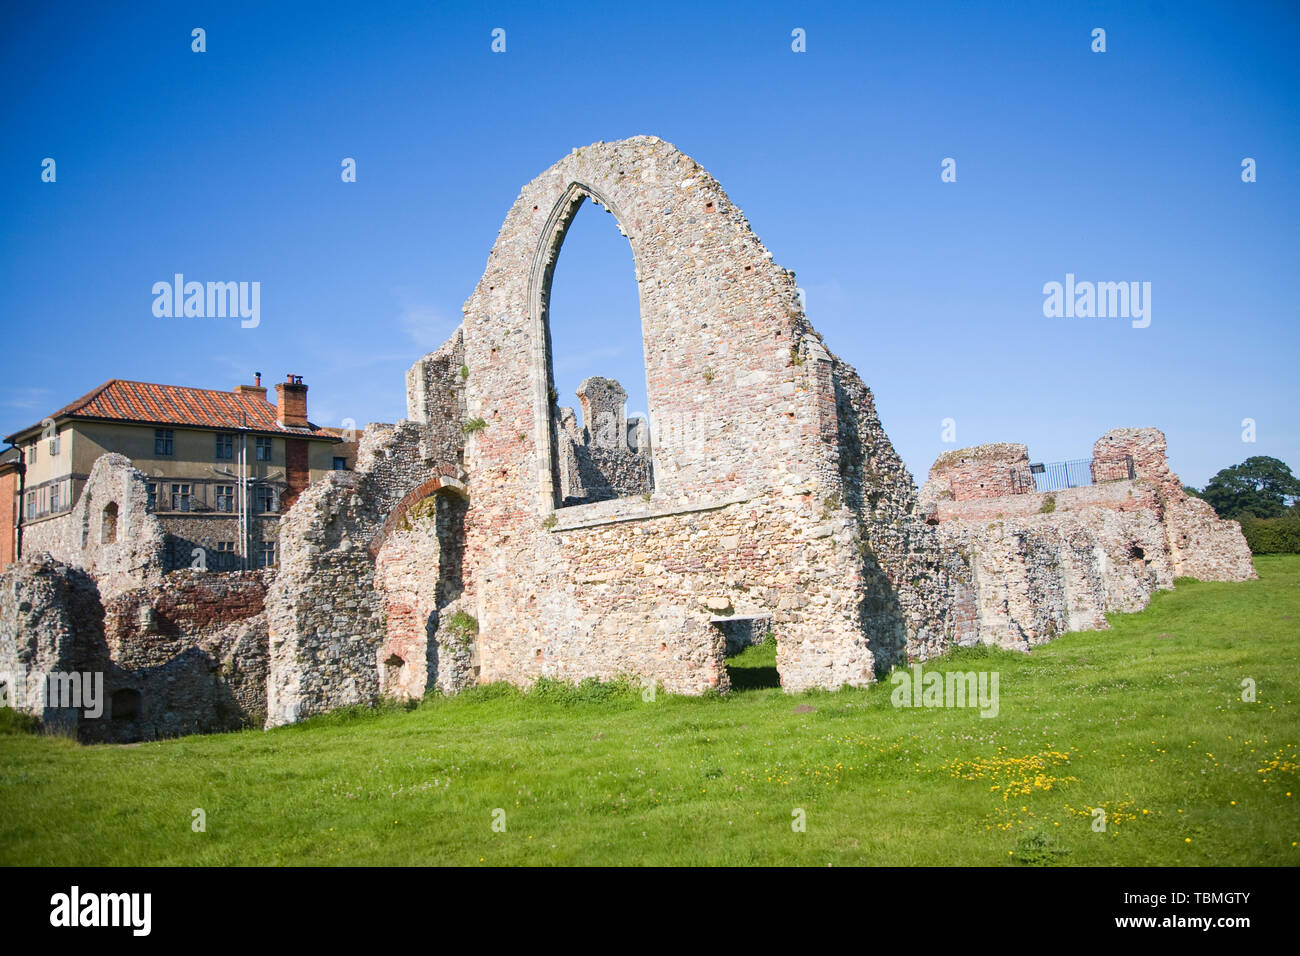 Mainly 14th century remains ruined buildings of Leiston Abbey, Suffolk, England, UK founded c. 1183 by Ranulf de Glanville - Stock Image